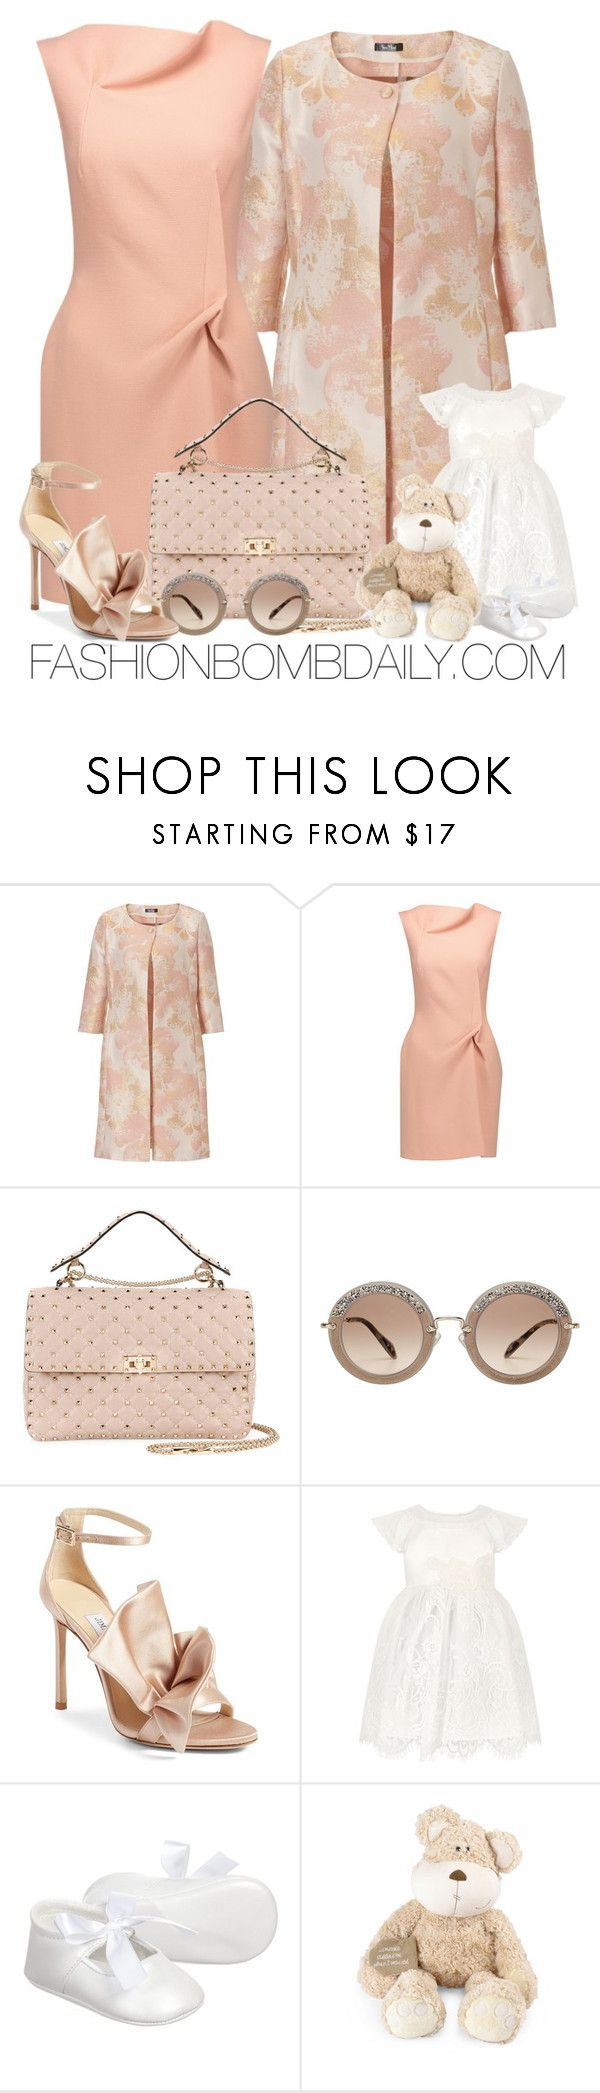 """""""Untitled #2034"""" by dnicoleg ❤ liked on Polyvore featuring Vera Mont, Roland Mouret, Valentino, Miu Miu, Jimmy Choo, Monsoon and Once Upon a Time"""